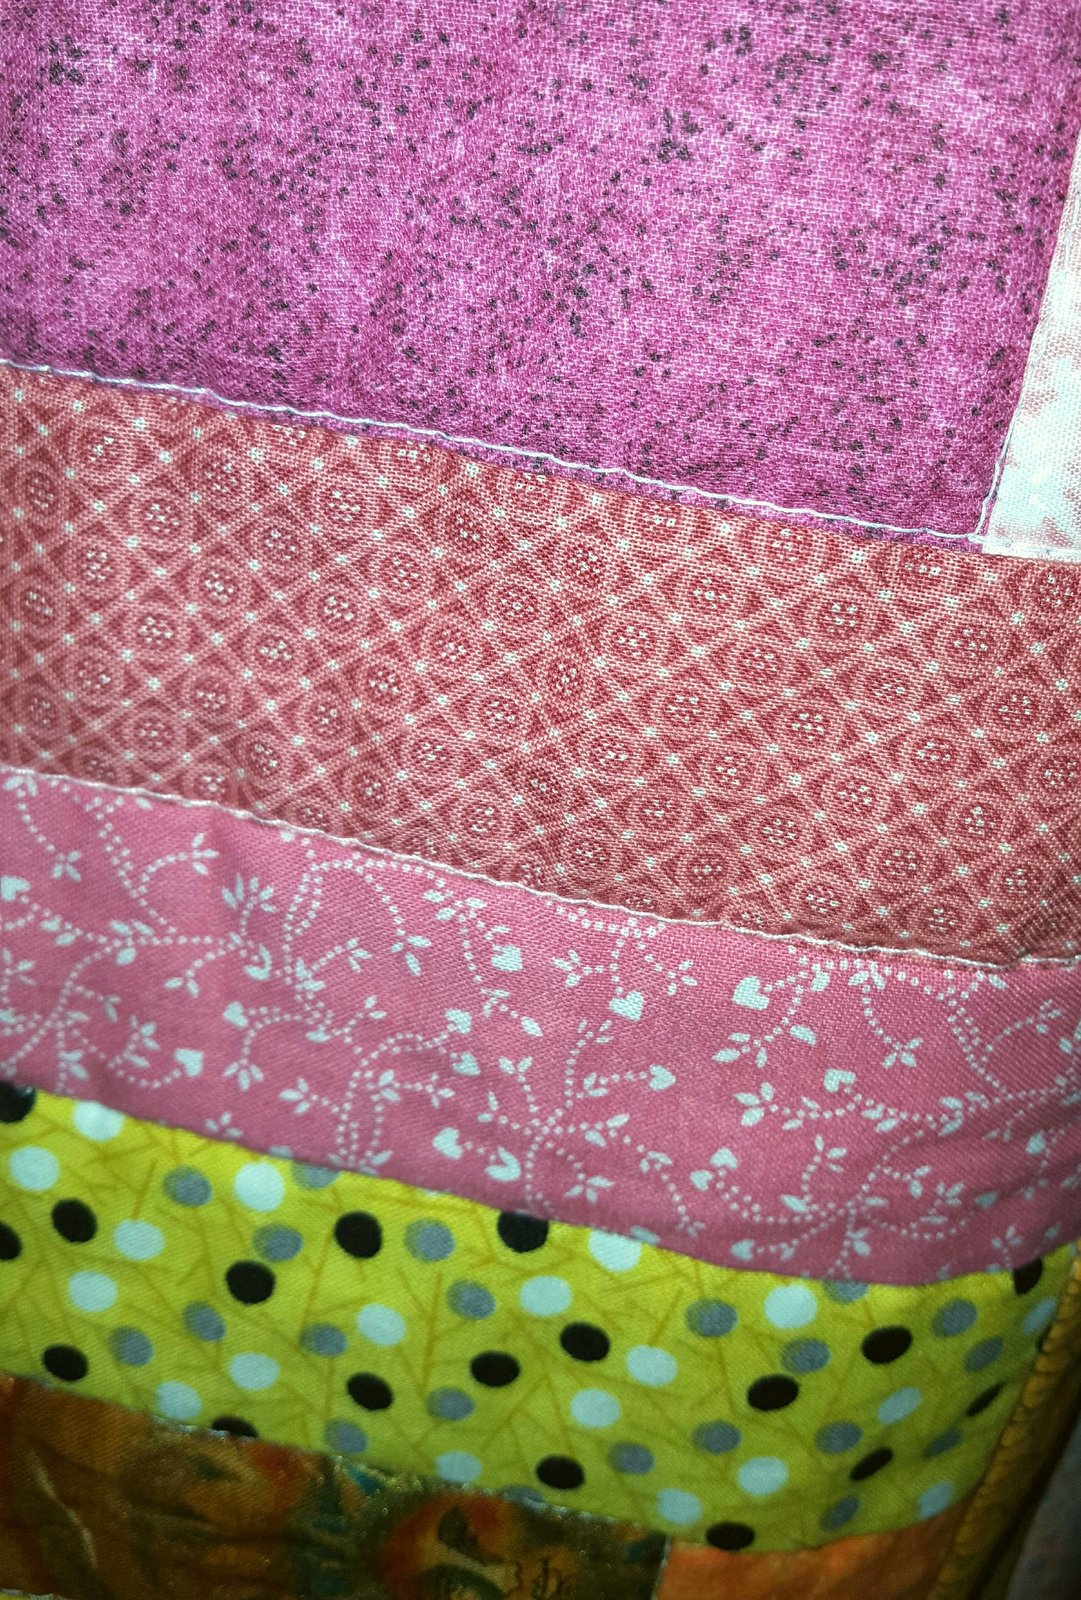 Handmade Quilted Tapestry/Blanket by Betty Joe (pink, white, yellow)